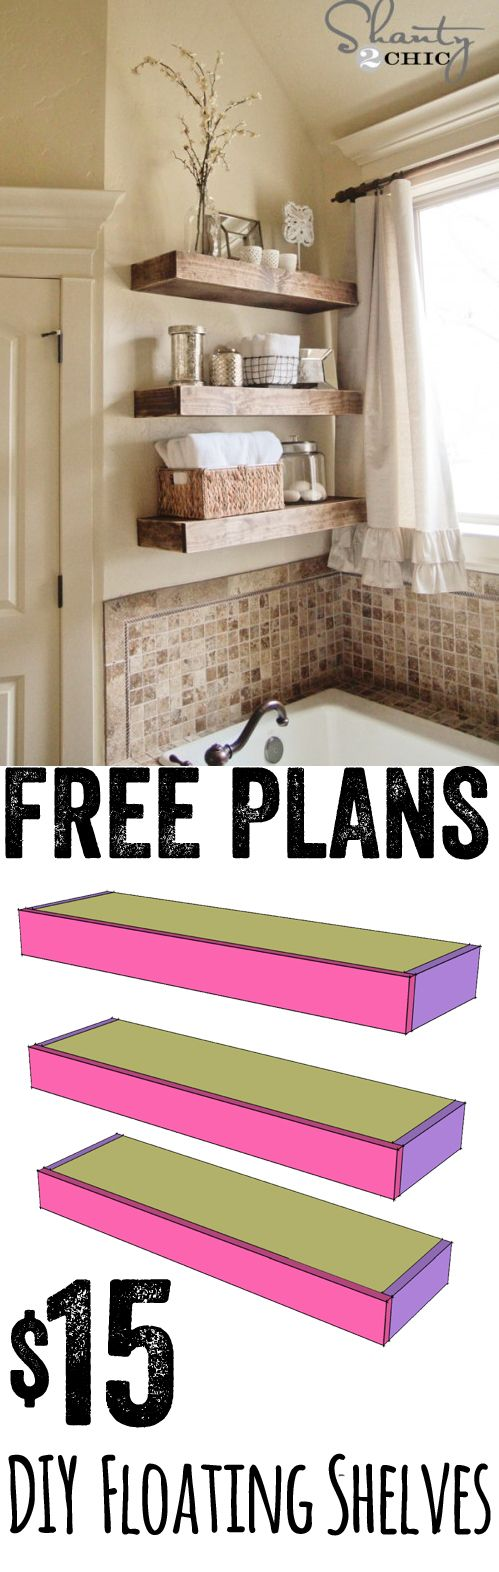 Free DIY Furniture Project Plan: Learn How to Build Floating Shelves [ Barndoorhardware.com ] #DIY #hardware #slidingdoor